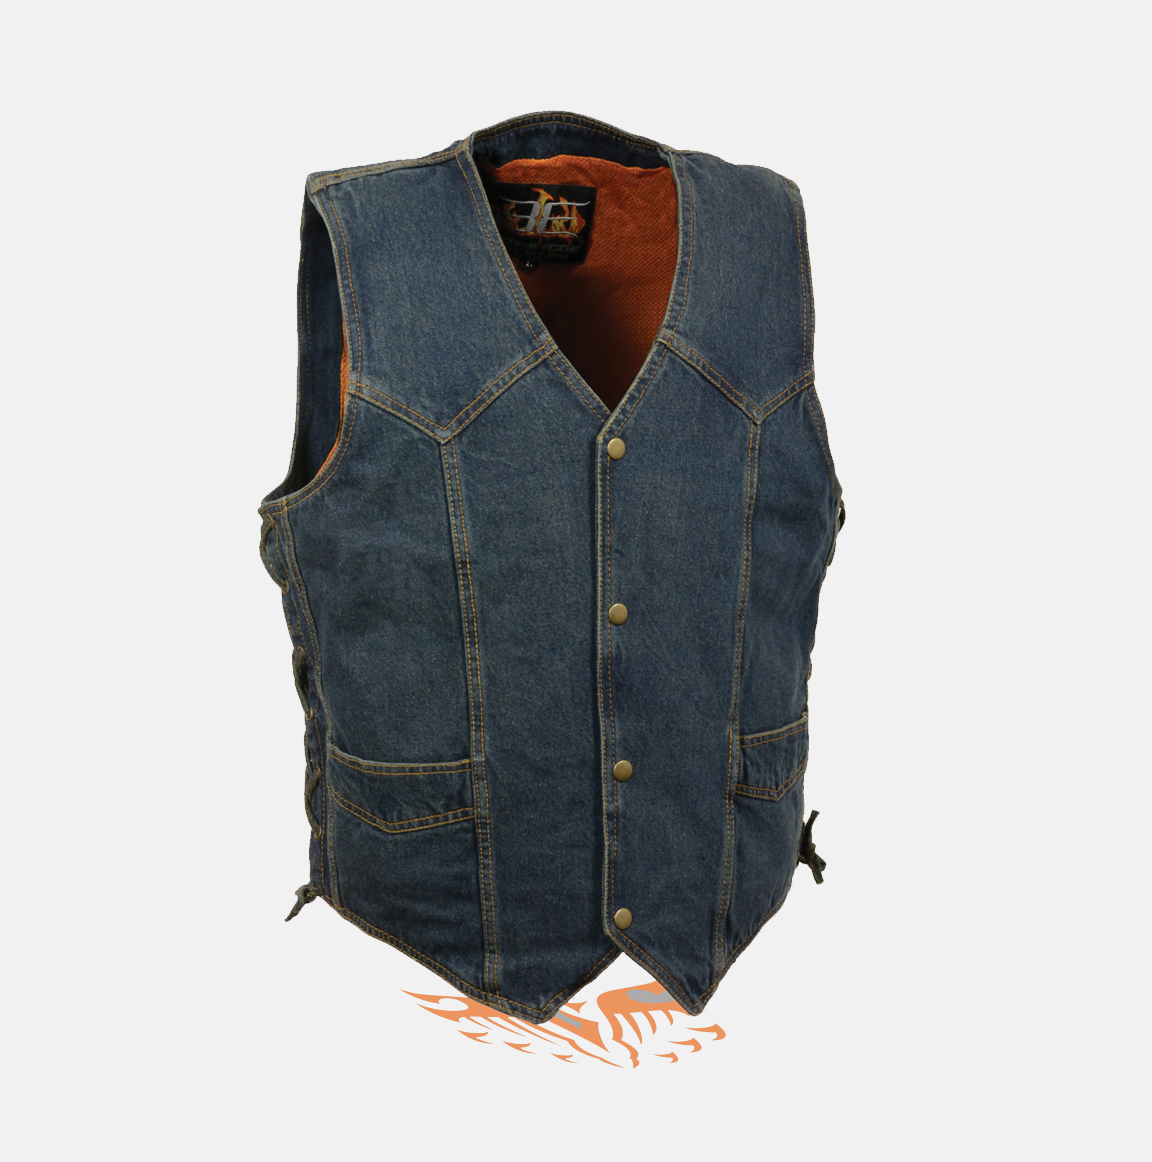 Men's denim Biker Vest and jackets available to Buy online with free delivery in USA. Quality black custom denim Motorcycle vests with gun Pockets.